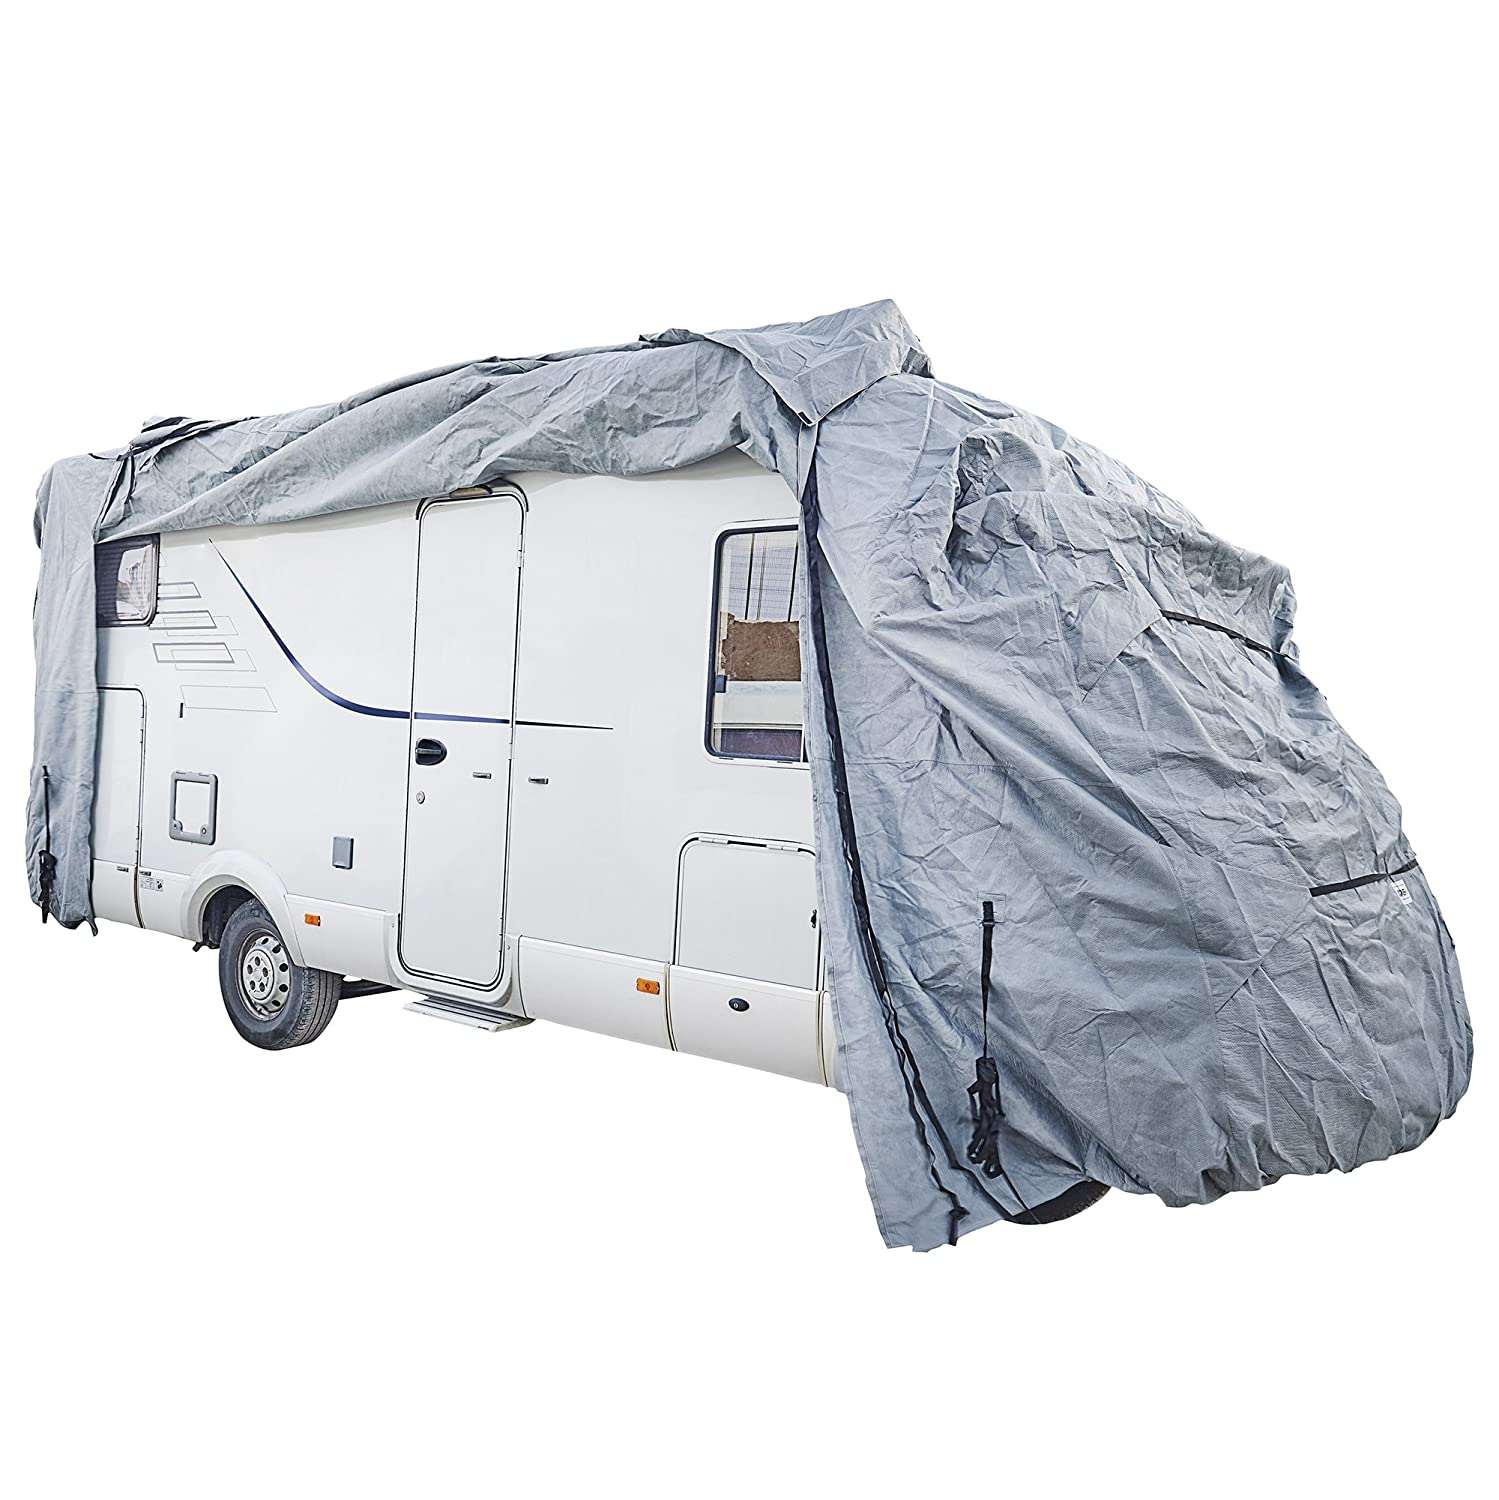 SUMEX Motorhome Cover Fits Breathable Water Resistant 5.0-5.5 m COVDH55